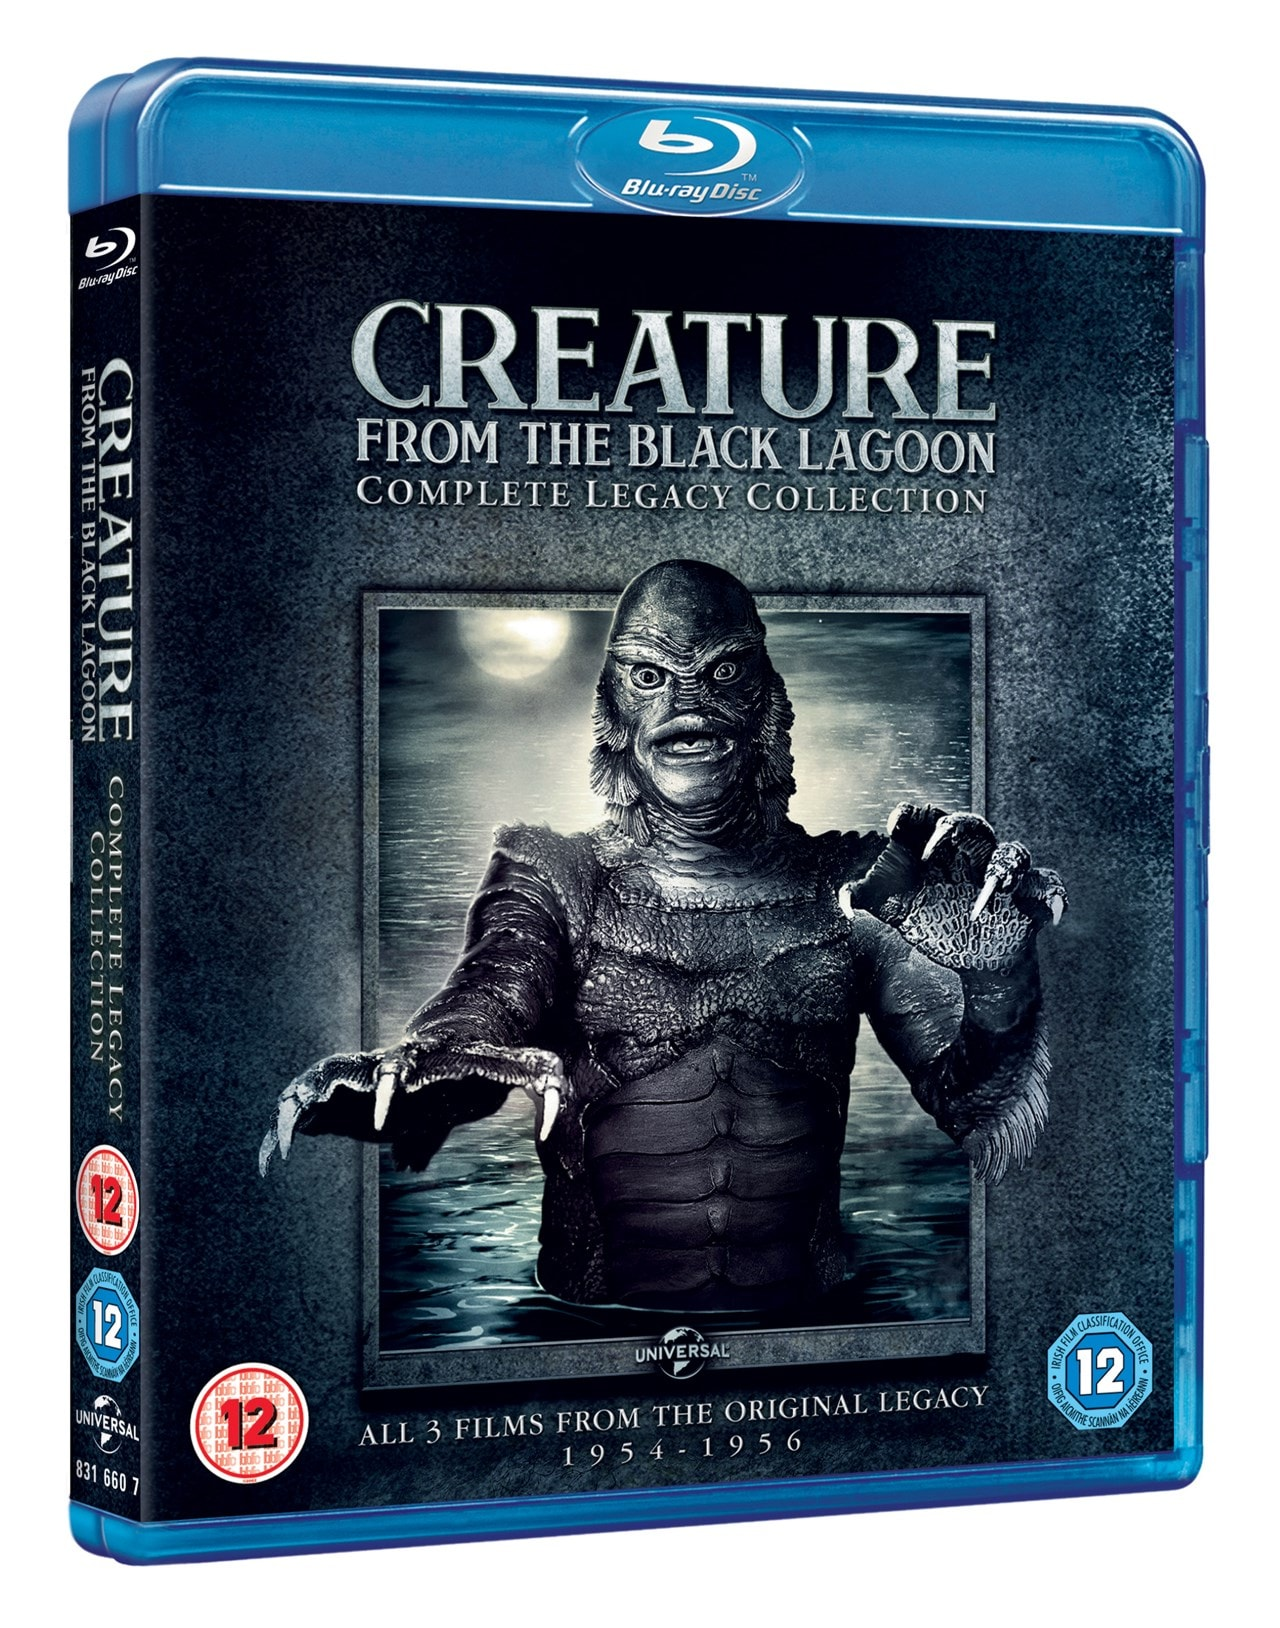 Creature from the Black Lagoon: Complete Legacy Collection - 2